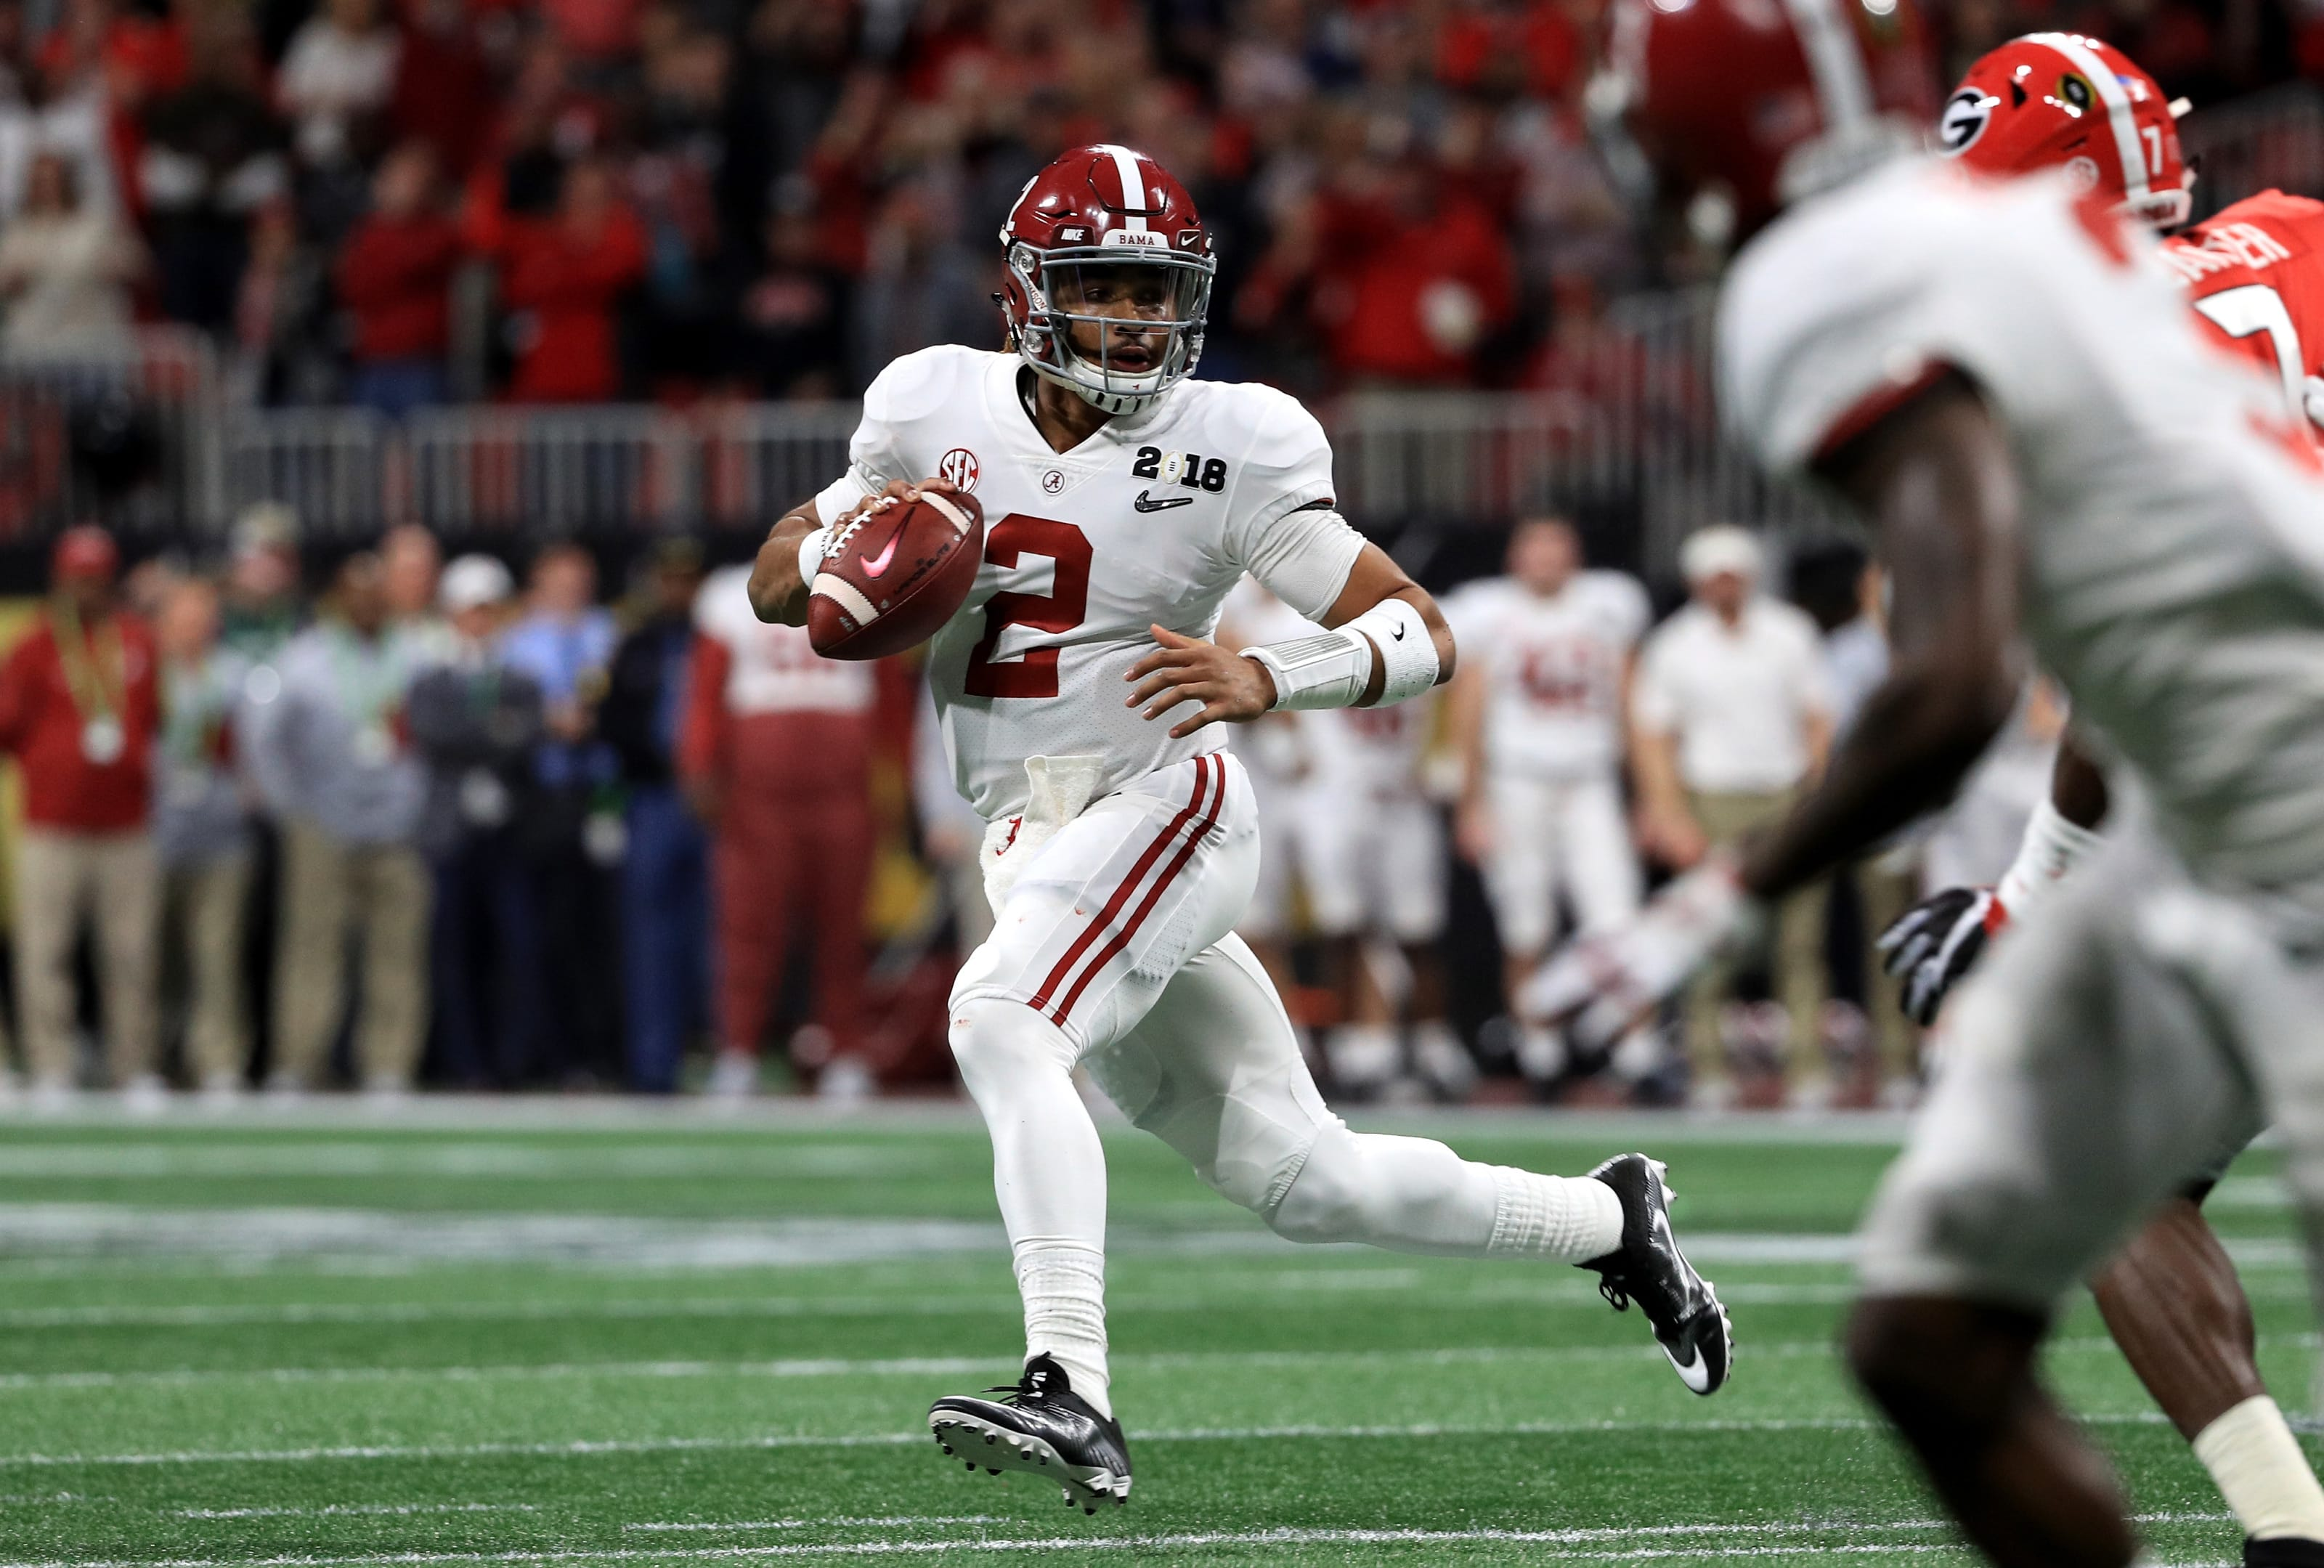 Alabama football QB, Jalen Hurts